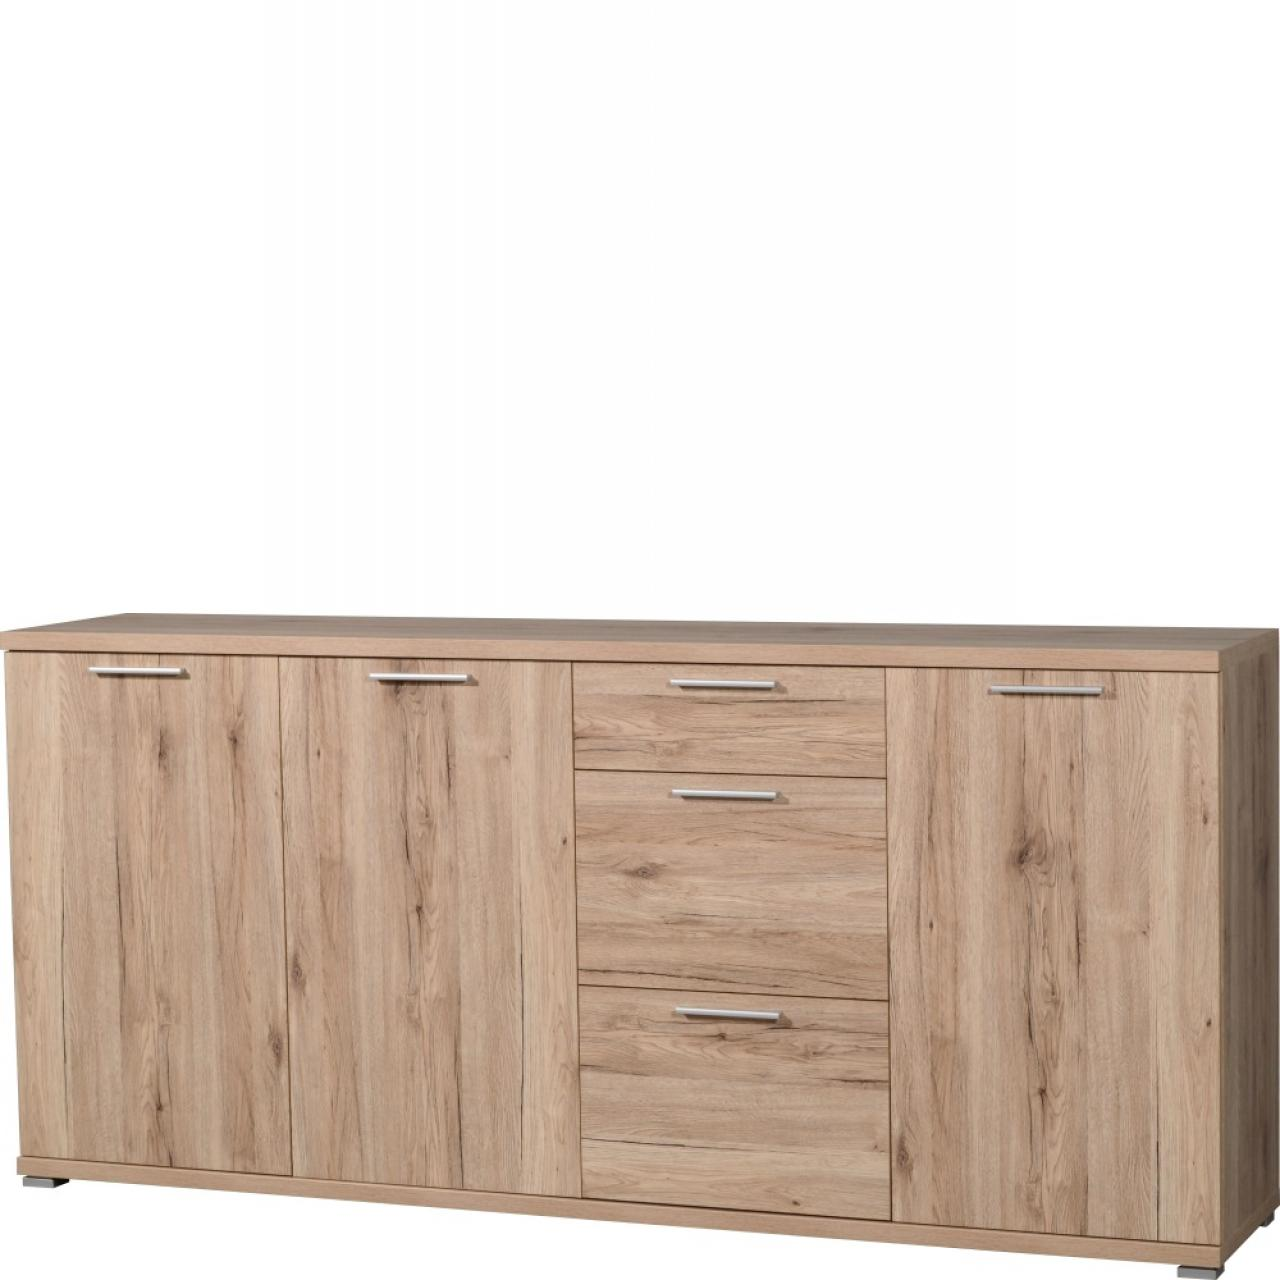 sideboard calpe beim bel wohnen m bel j hnichen. Black Bedroom Furniture Sets. Home Design Ideas